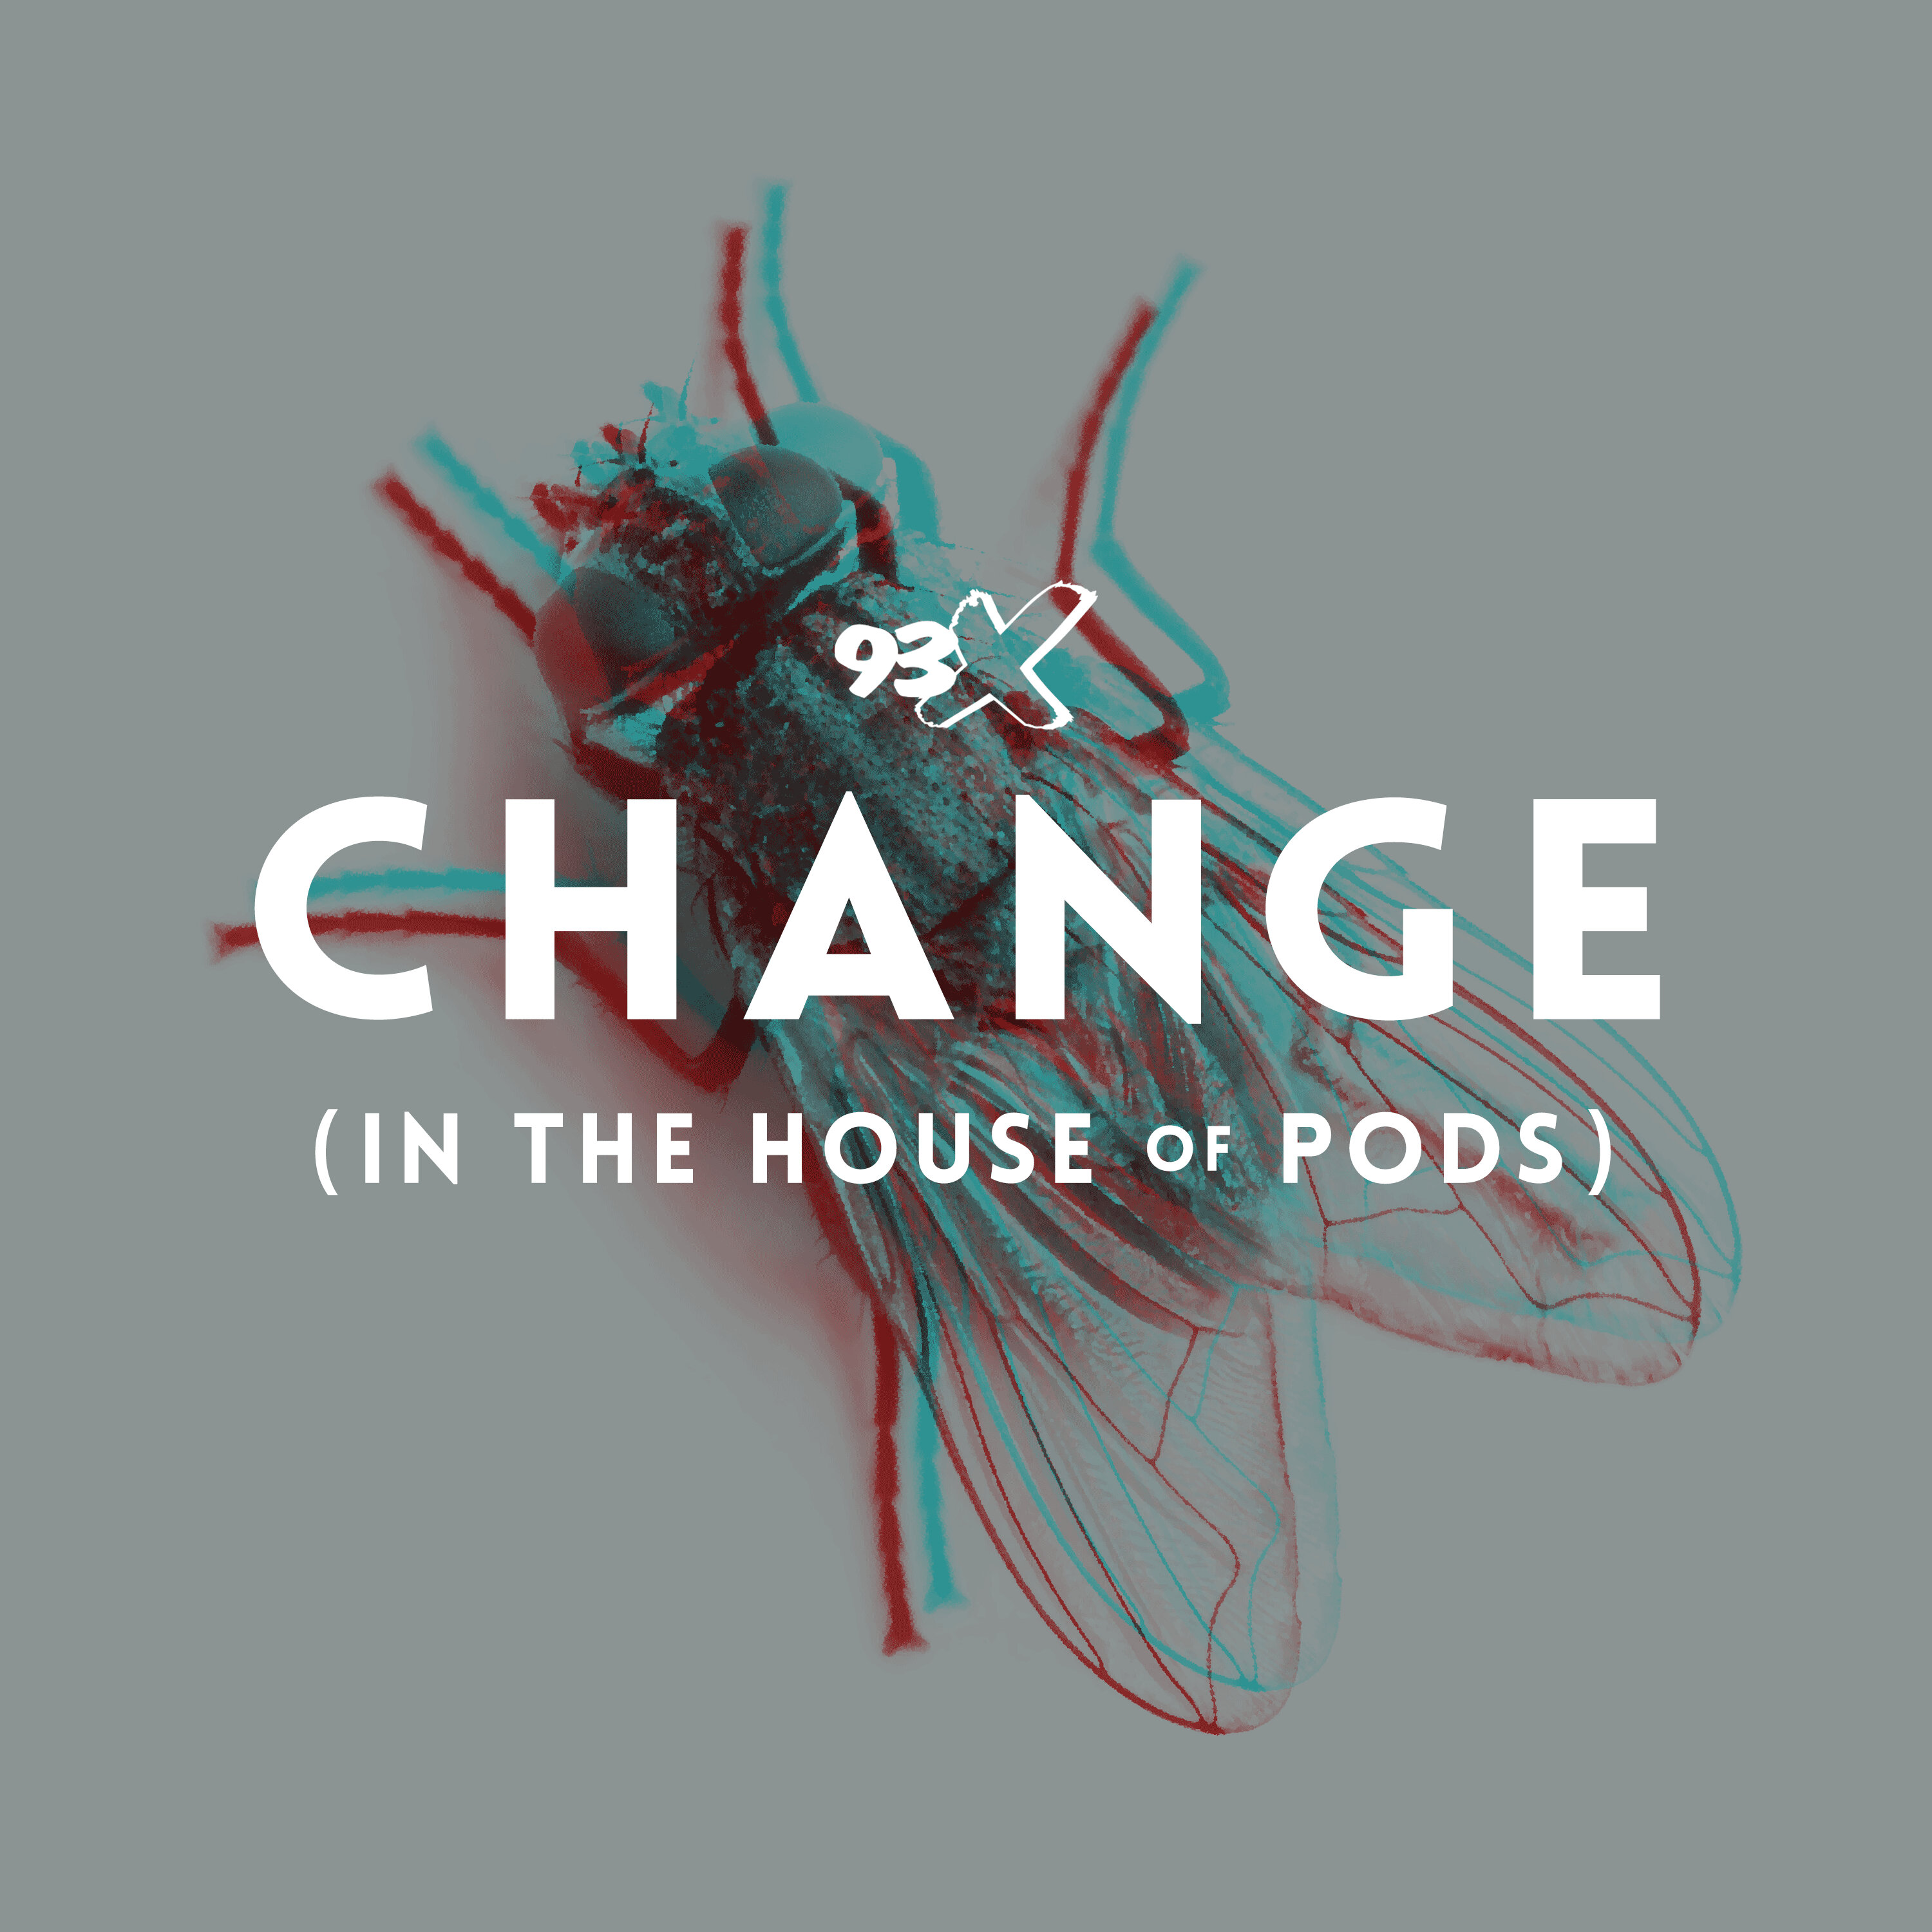 Change (In The House of Pods)